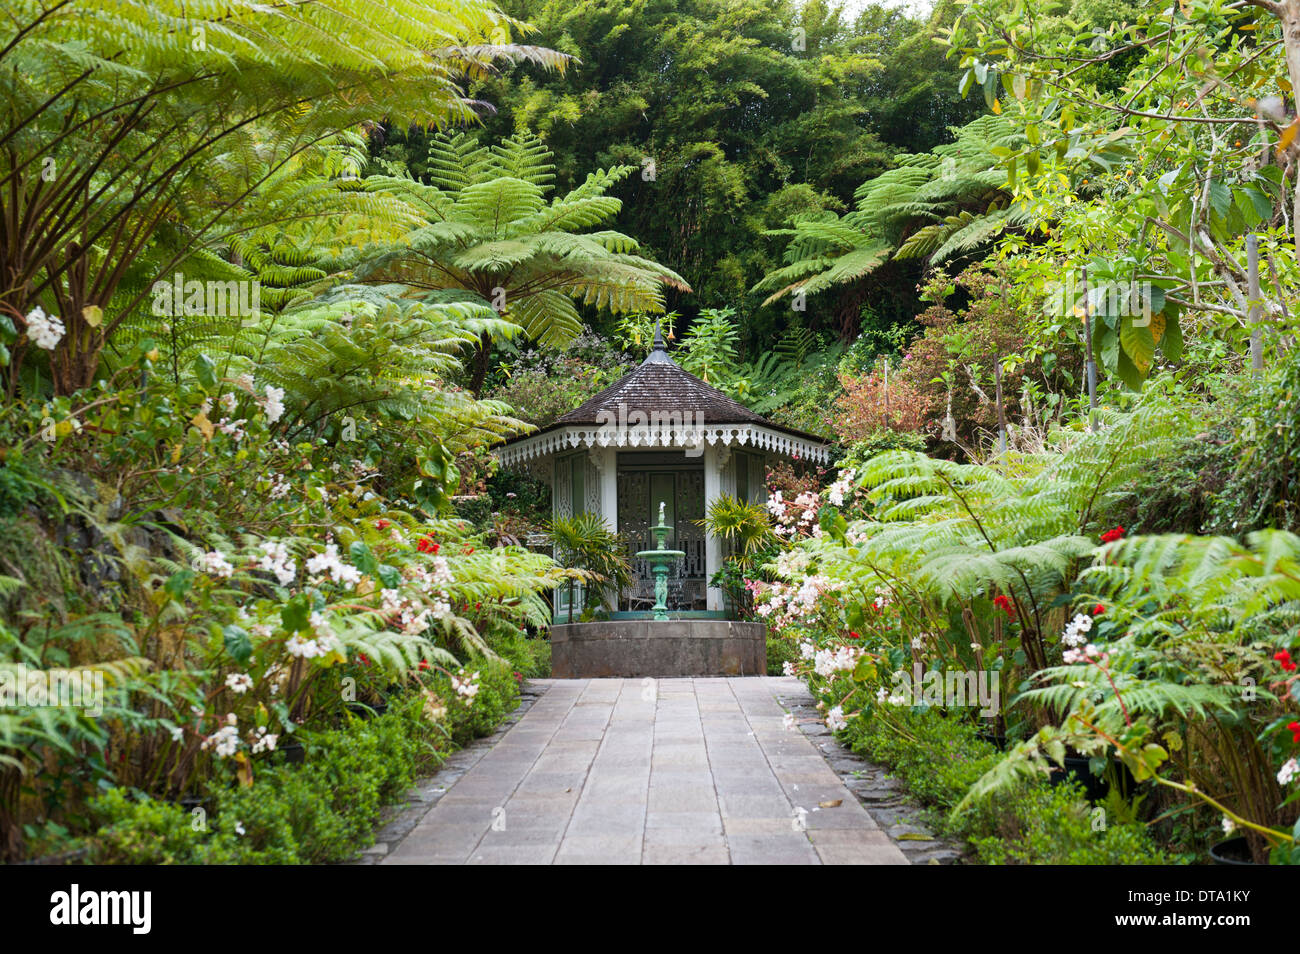 Creole Architecture, Garden With A Fountain, Gazebo, Maison Folio, Tropical  Vegetation With Tree Ferns (Cyatheales)